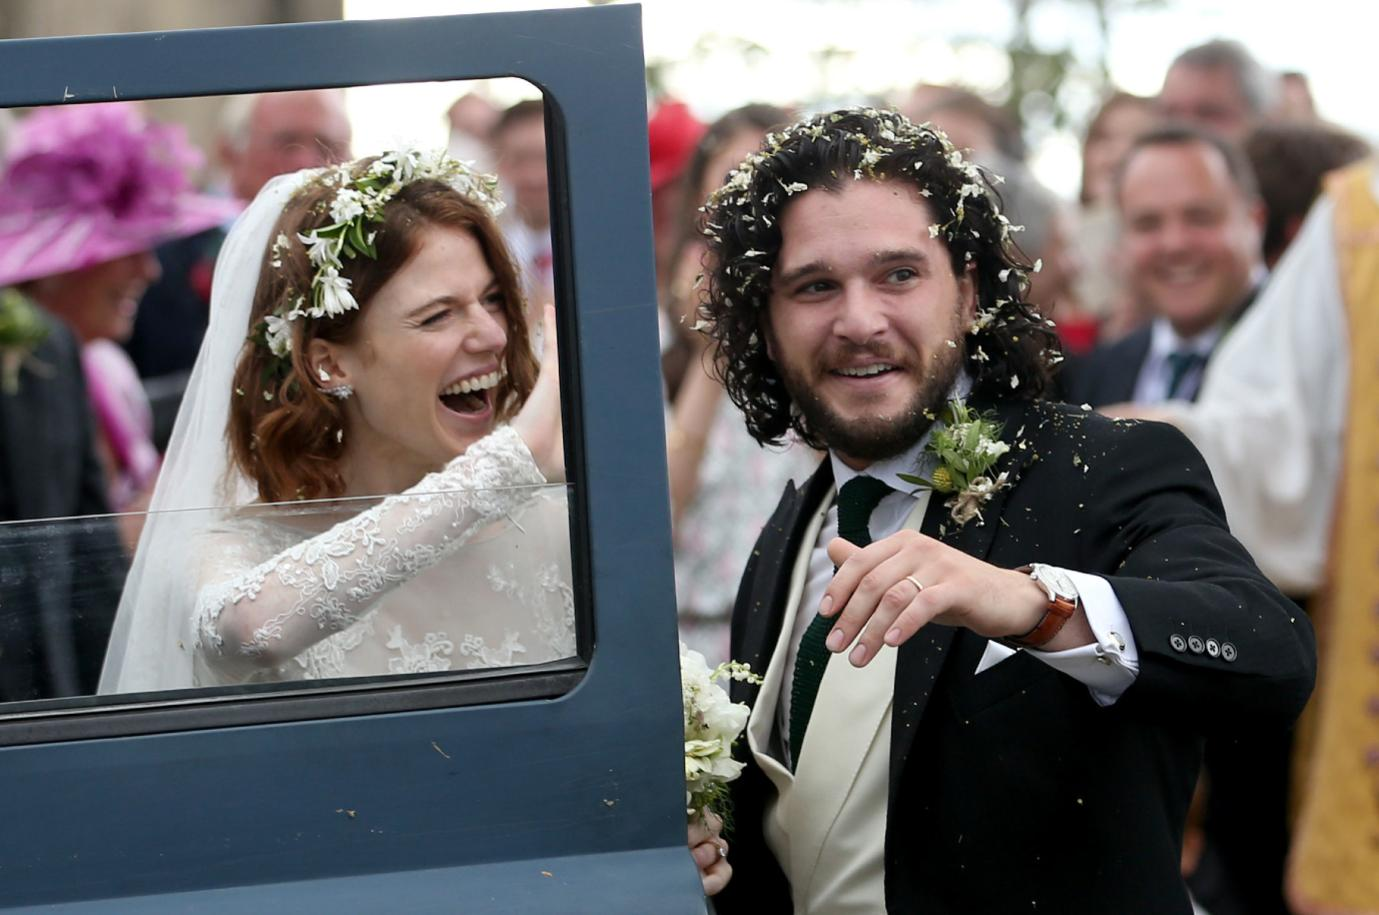 Kit Harington and Rose Leslie smile on their wedding day with their Land Rover Defender getaway car